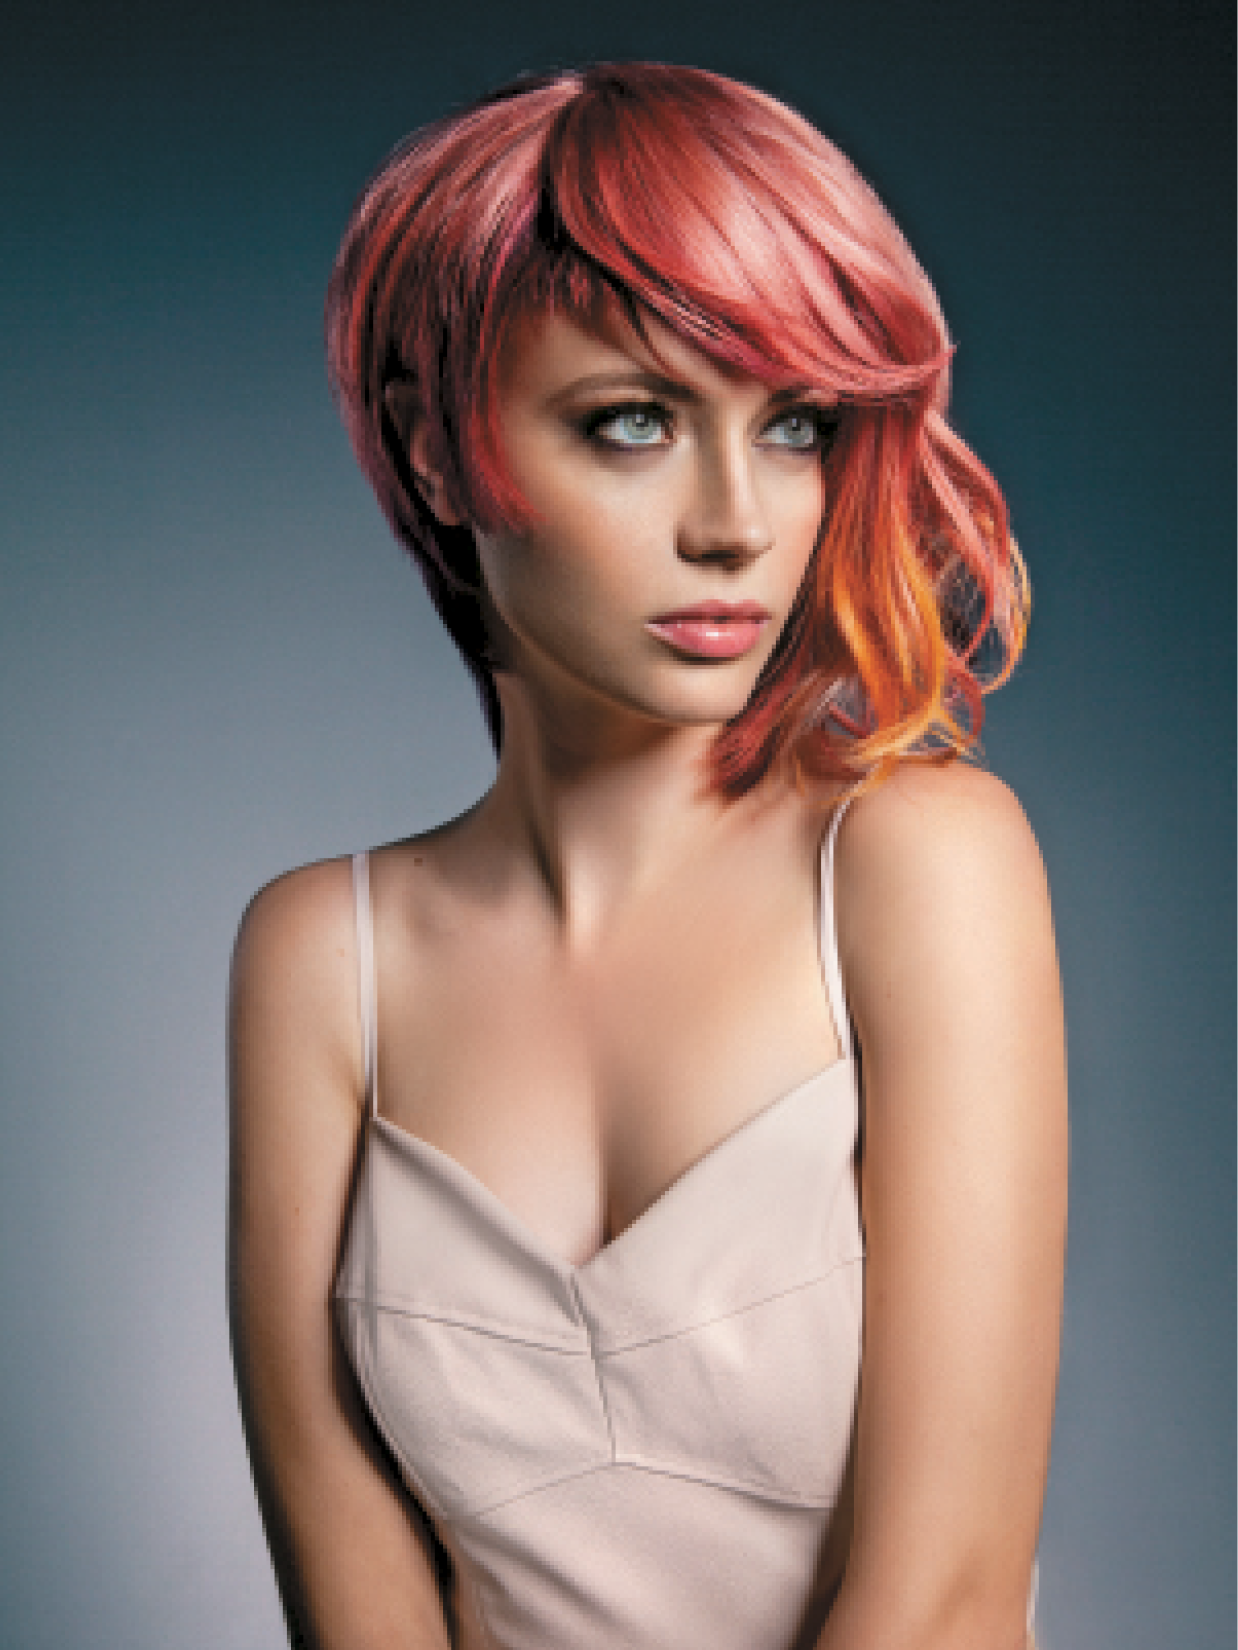 For the sunrise effect, Sprinkle used Metamorfix color and KeraHold color and developer, and started at a level 8. He suggests pre-lightening hair with It's a Blonde Thing Keratin Lightening System if necessary. Sprinkle first made circular partings around the head in an asymmetrical shape, and created a tropical orchid shade.